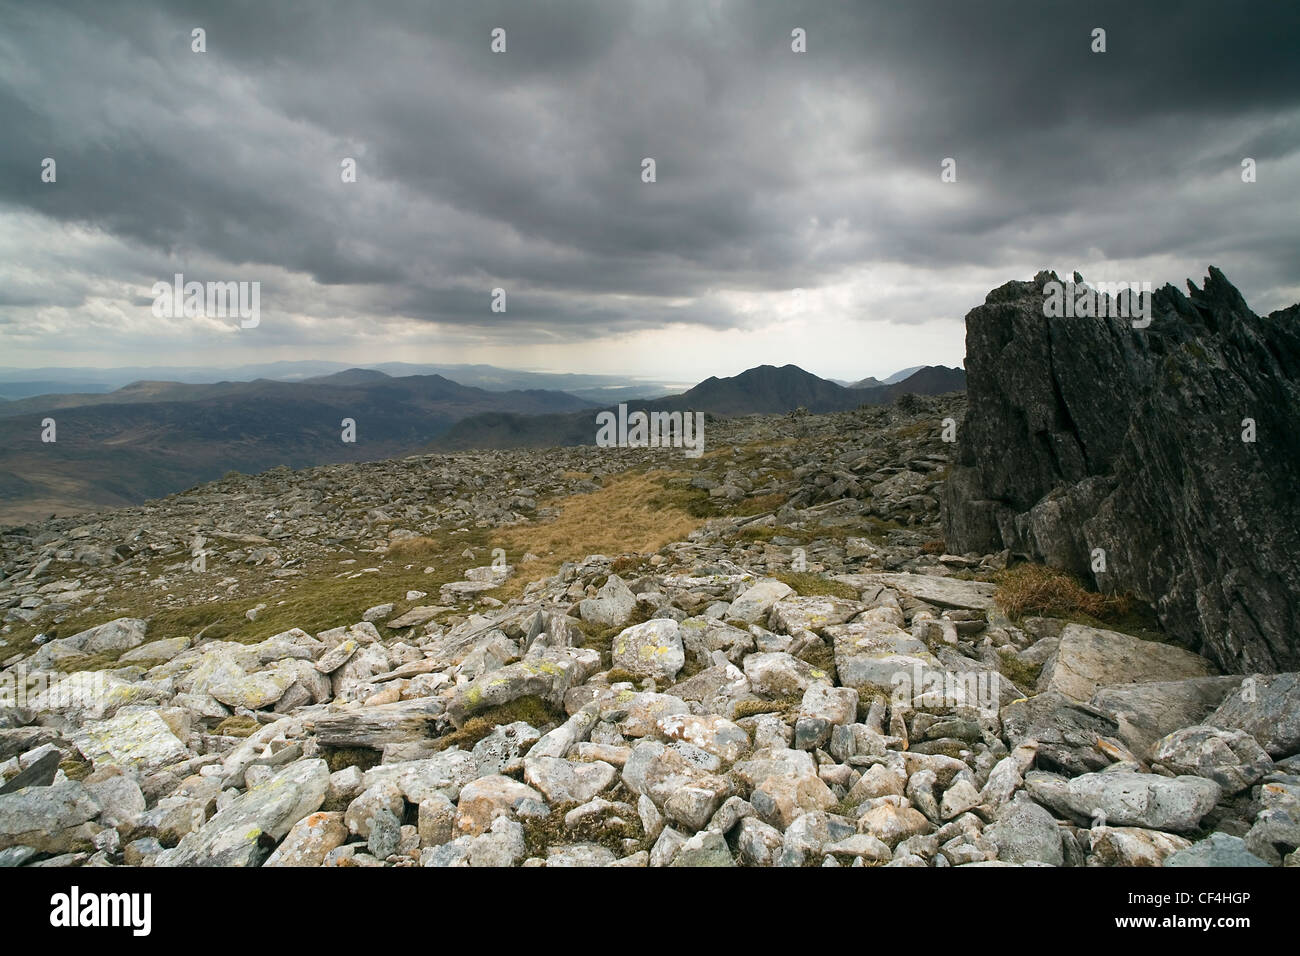 View from the summit of Glyder Fawr. At approximately 3,277ft this is the highest peak in the compact Glyder range. - Stock Image